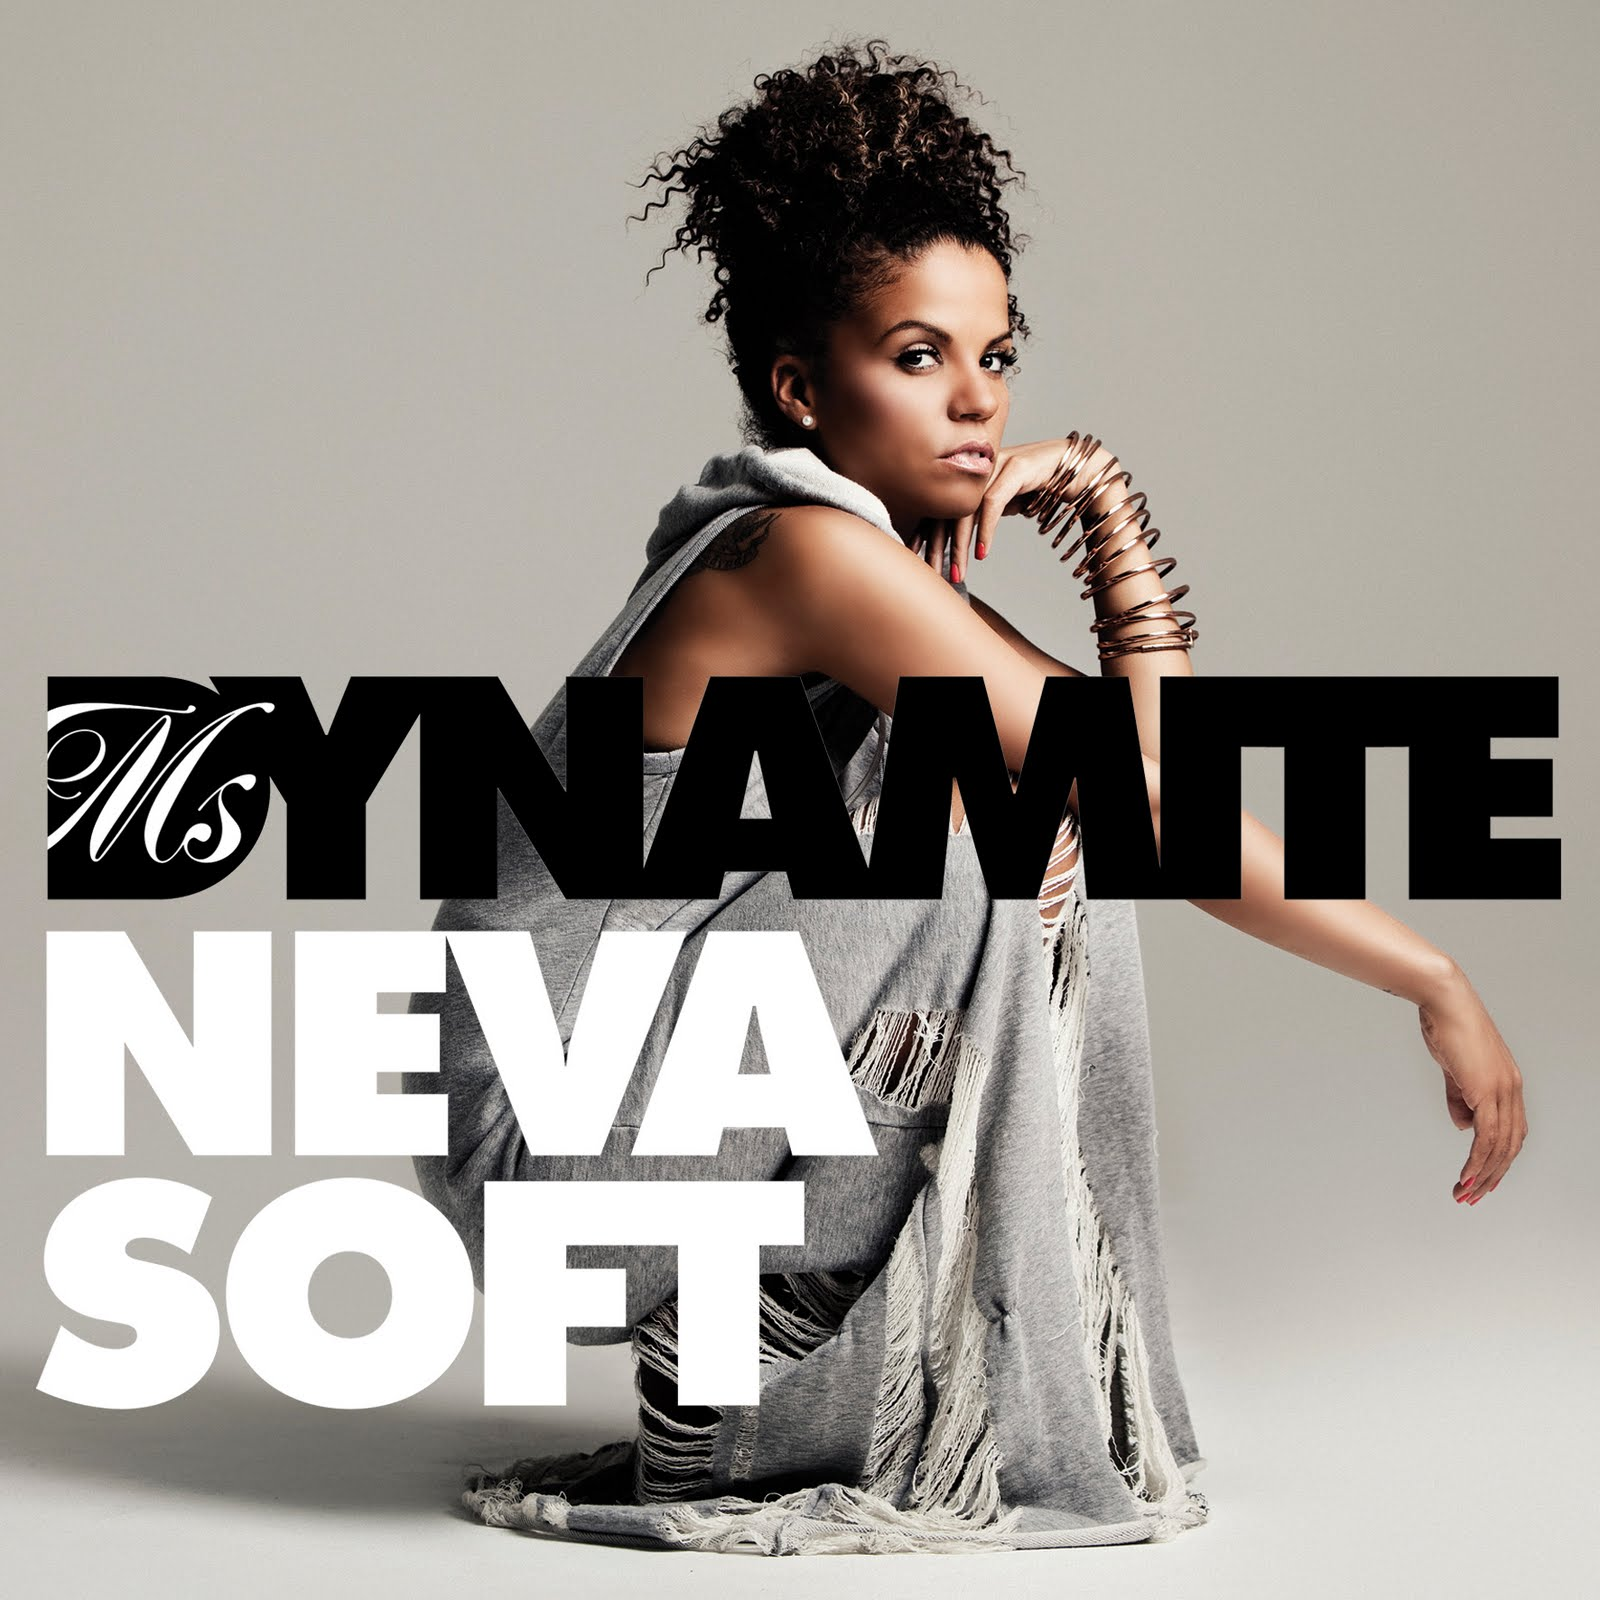 http://2.bp.blogspot.com/-7pm6tkCjUgc/TmiNajZ96dI/AAAAAAAAAvg/bY31cQAXoCY/s1600/MS_DYNAMITE_NEVA_SOFT_PACKSHOT_FINAL-copy.jpg